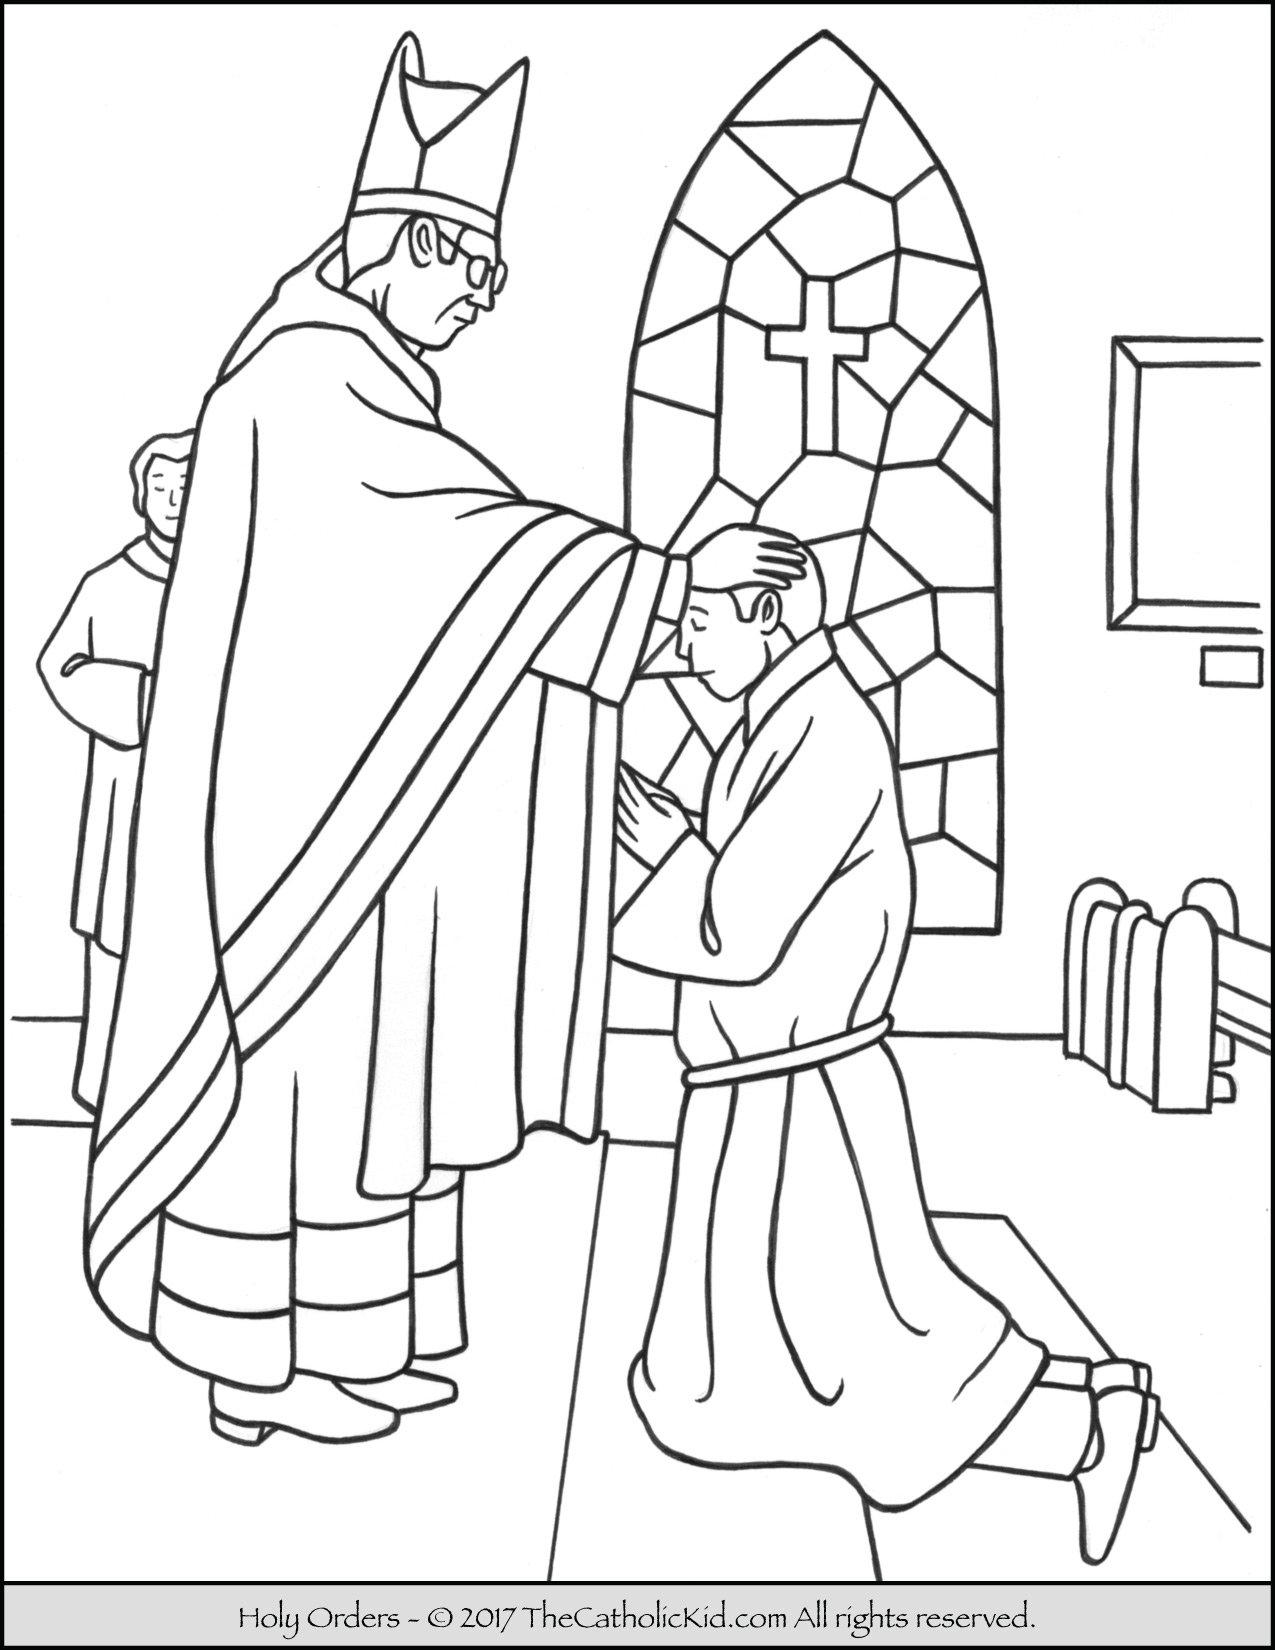 sacrament coloring pages best 25 jesus coloring pages ideas on